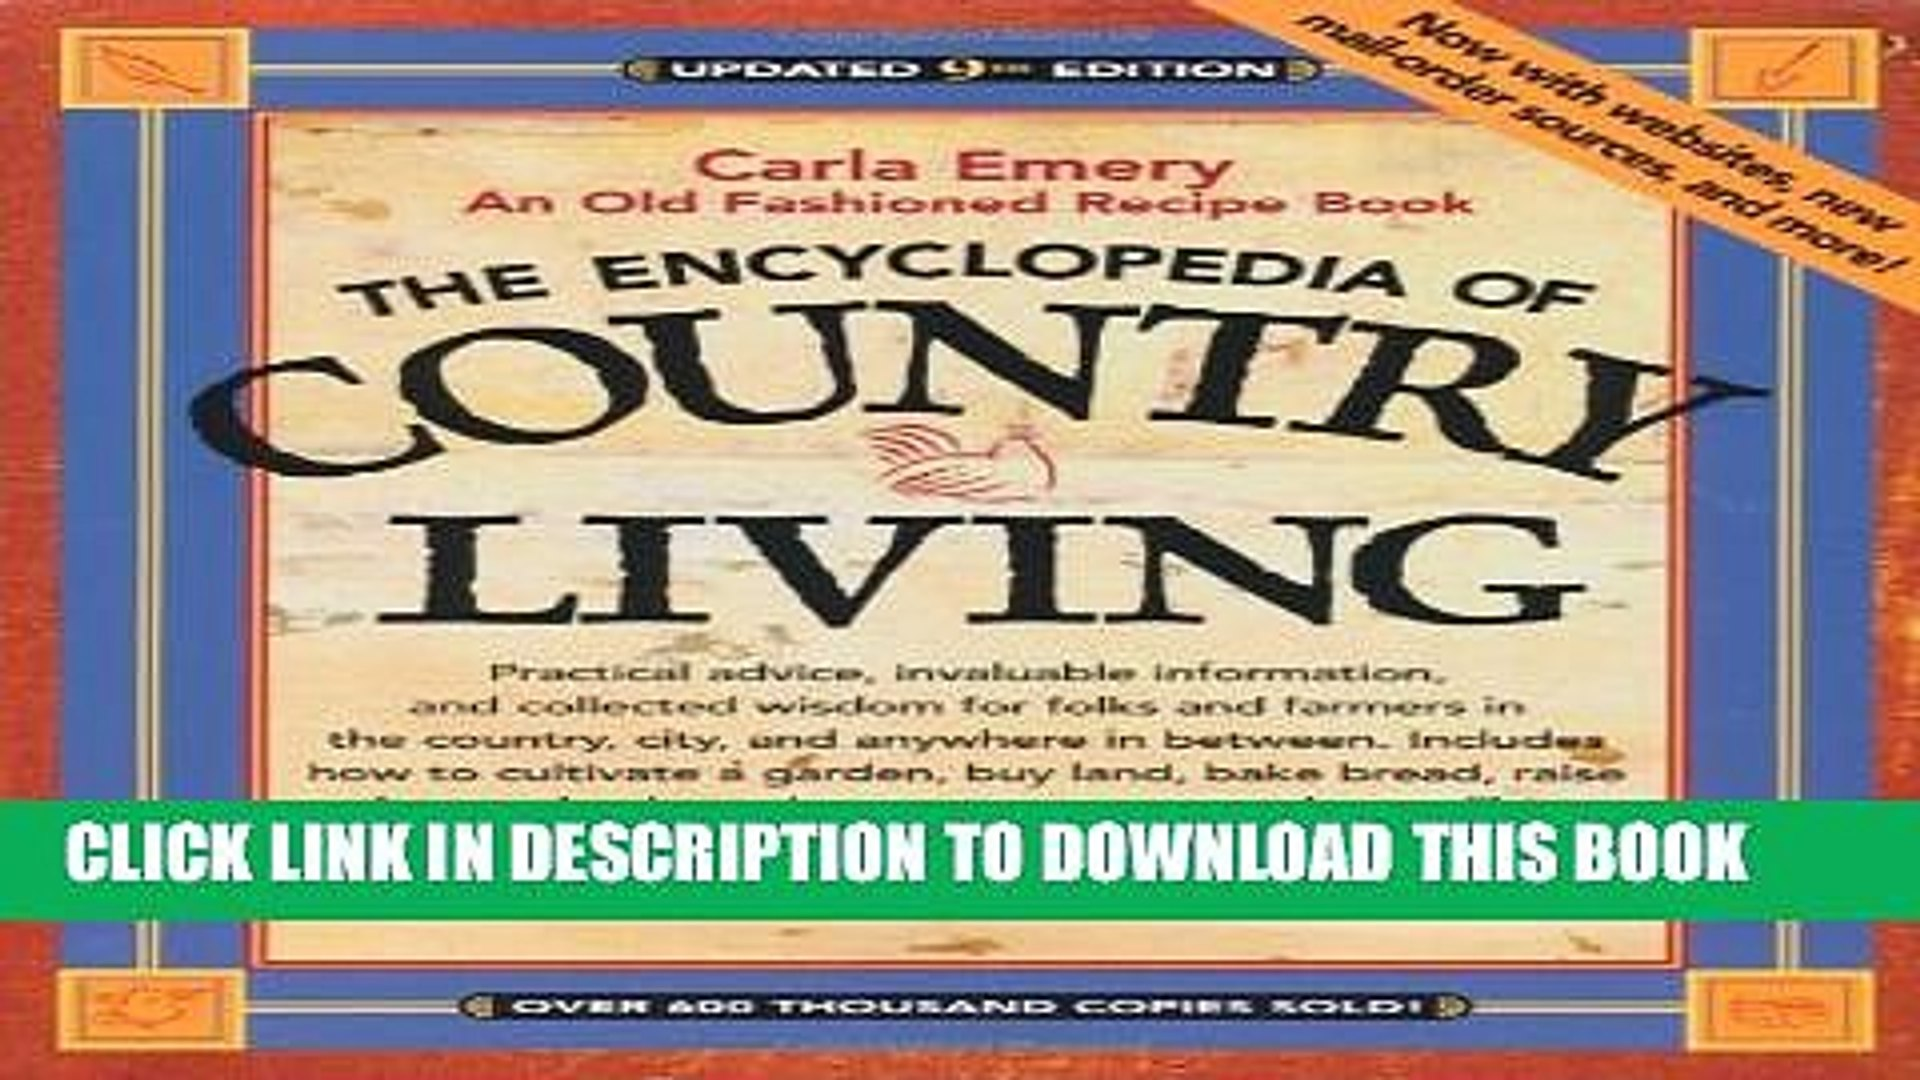 The Encyclopedia of Country Living: An Old Fashioned Recipe Book